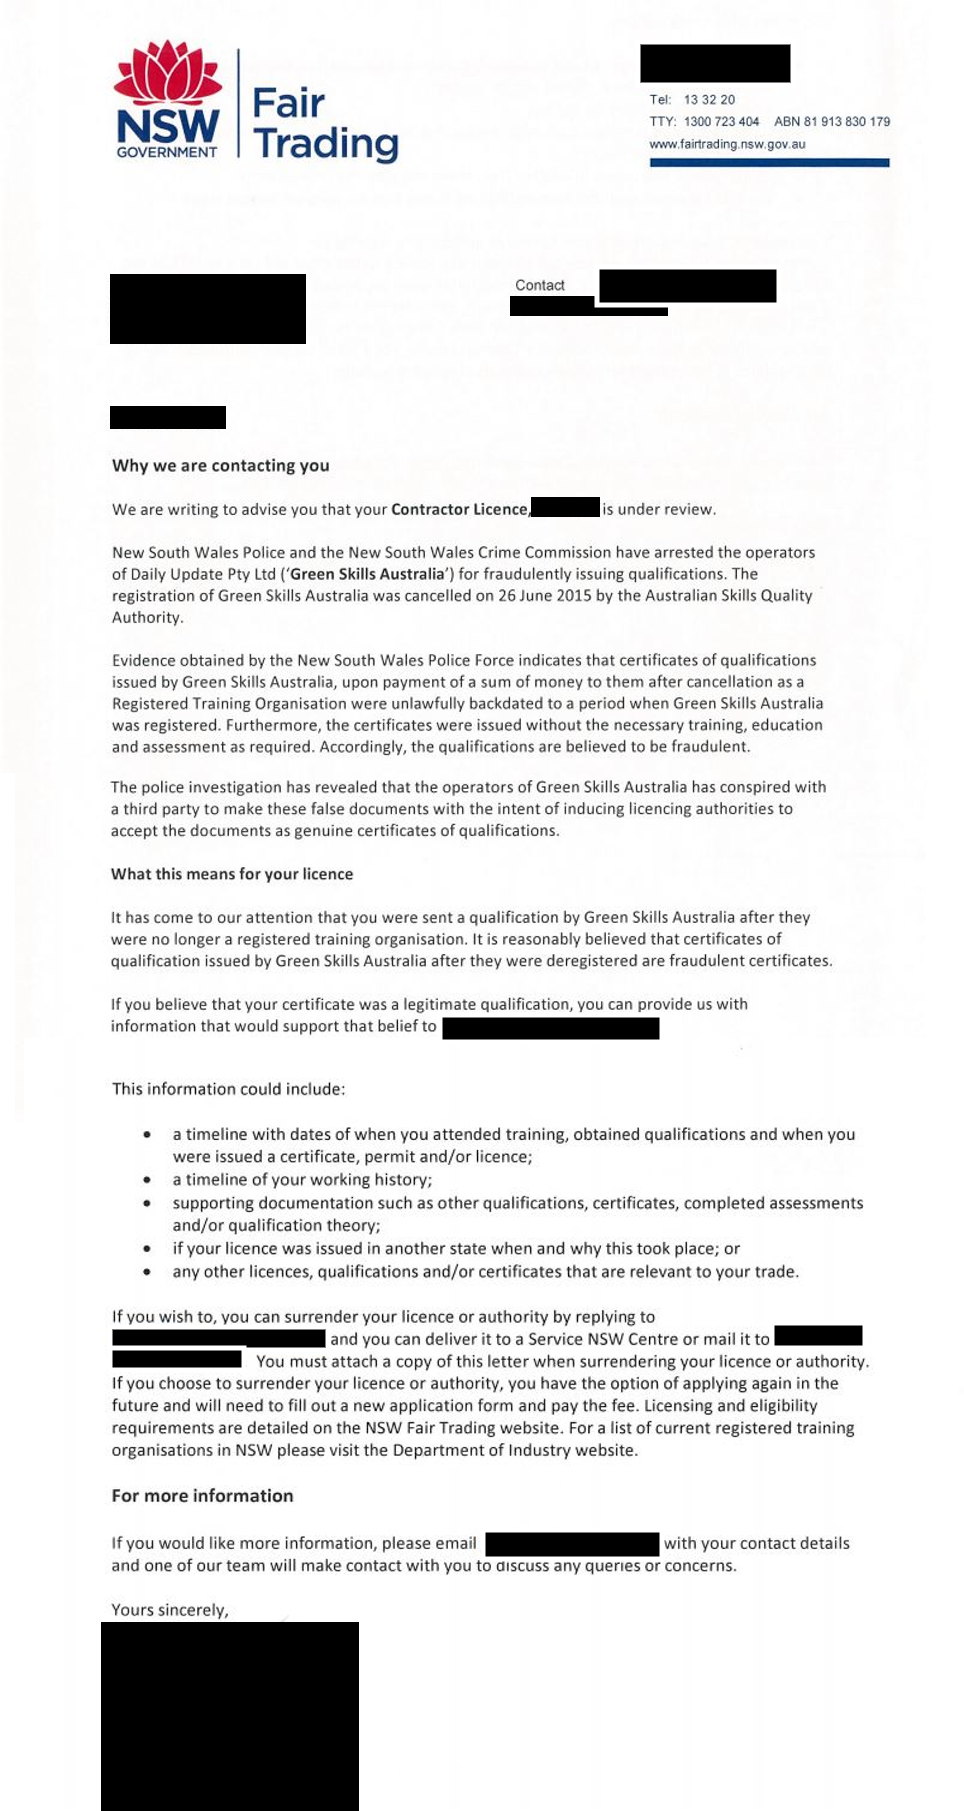 letter from NSW Department of Fair Trading about Contractor's Licence from Green Skills Australia